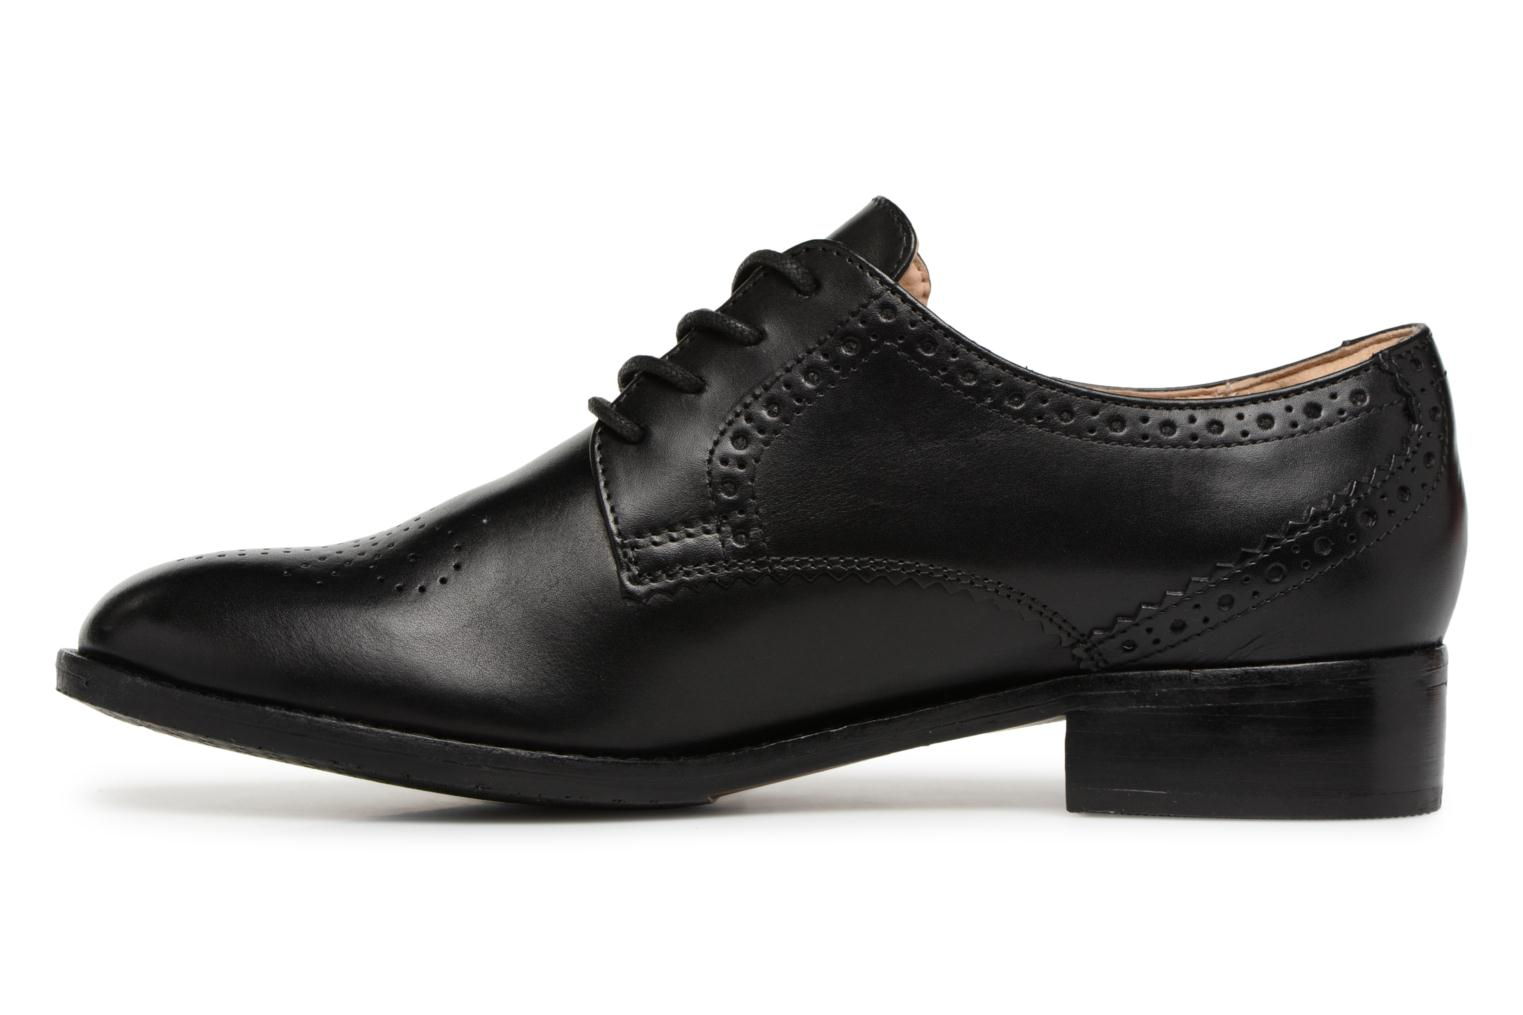 Rose Leather Black New Netley Clarks qULGSzMpV